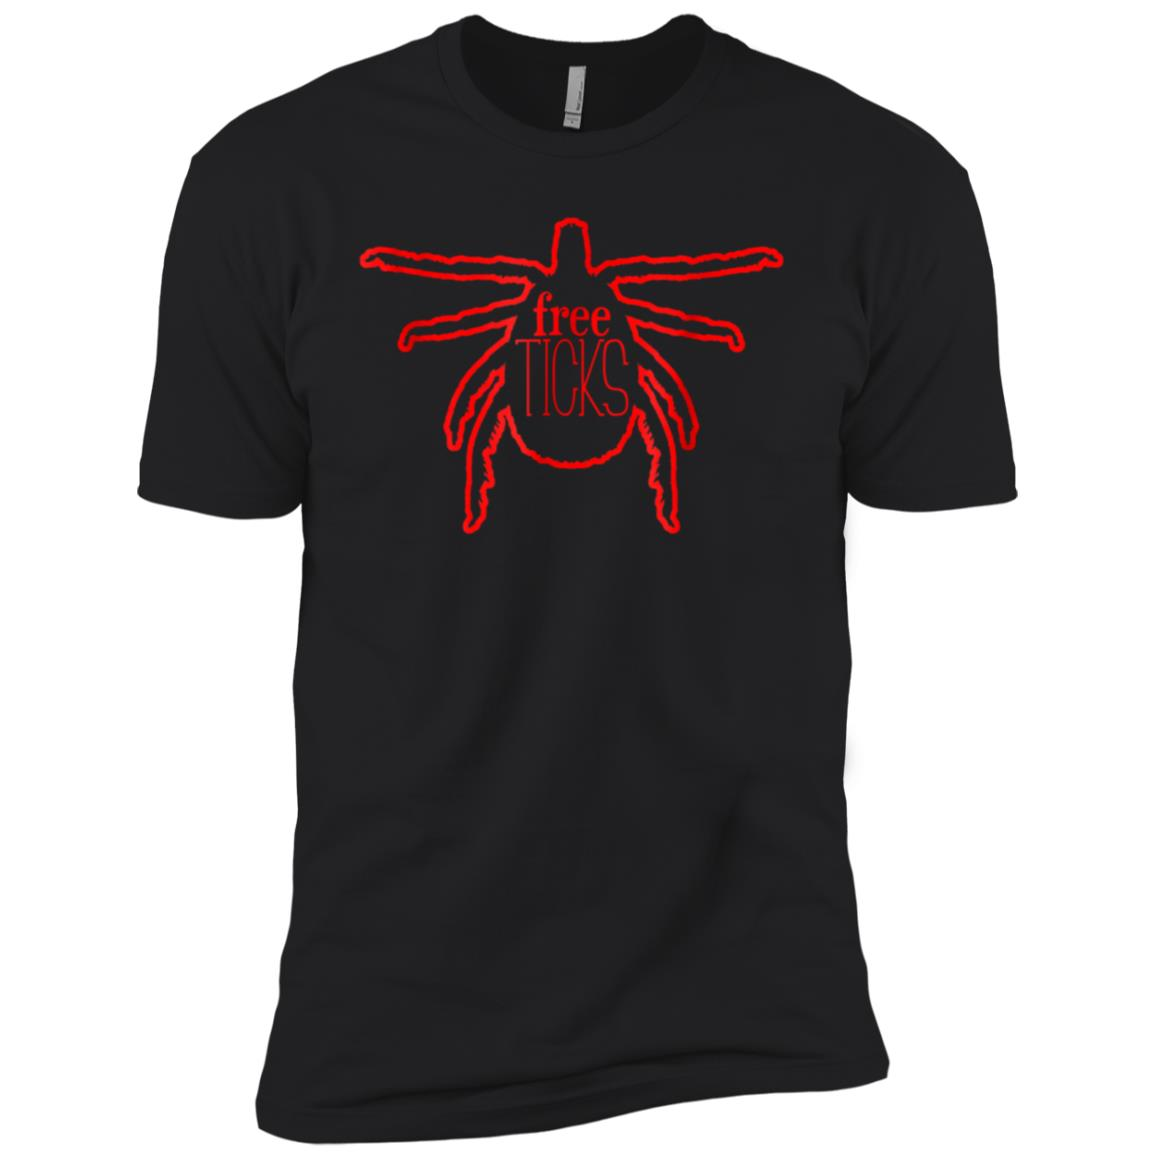 Free Ticks! Funny Parasite Camping For Campers Men Short Sleeve T-Shirt